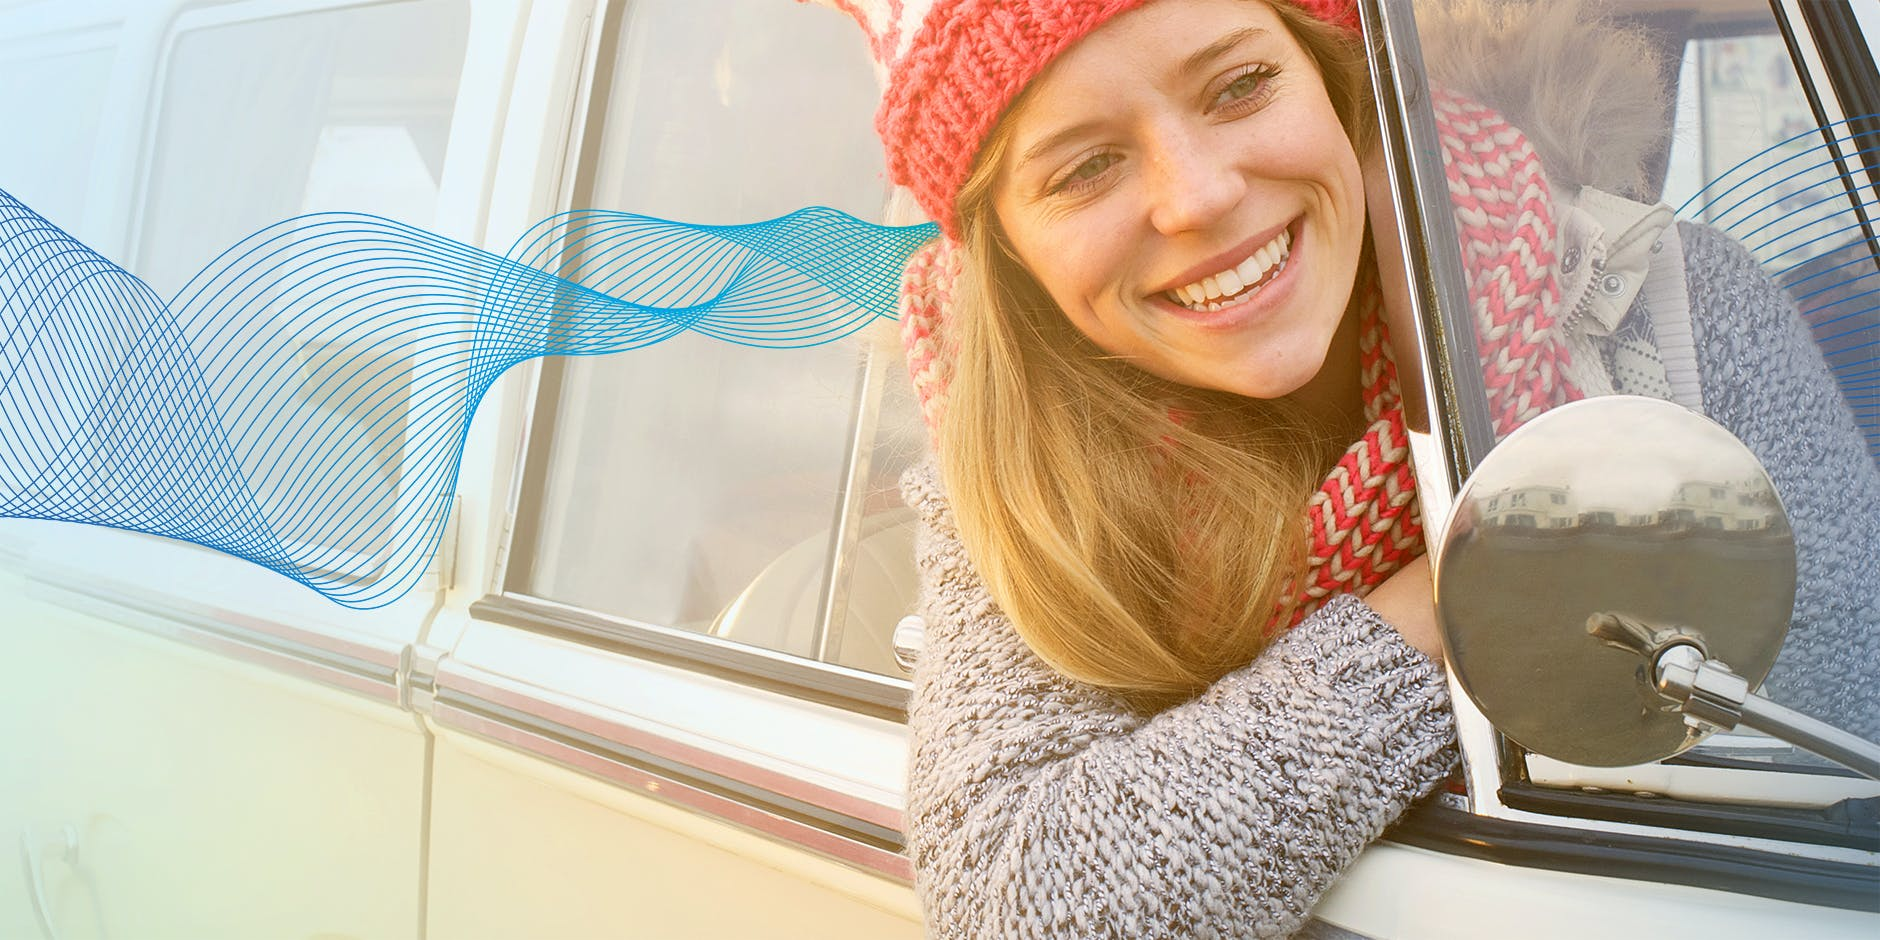 Woman smiling with head outside car window otrivine